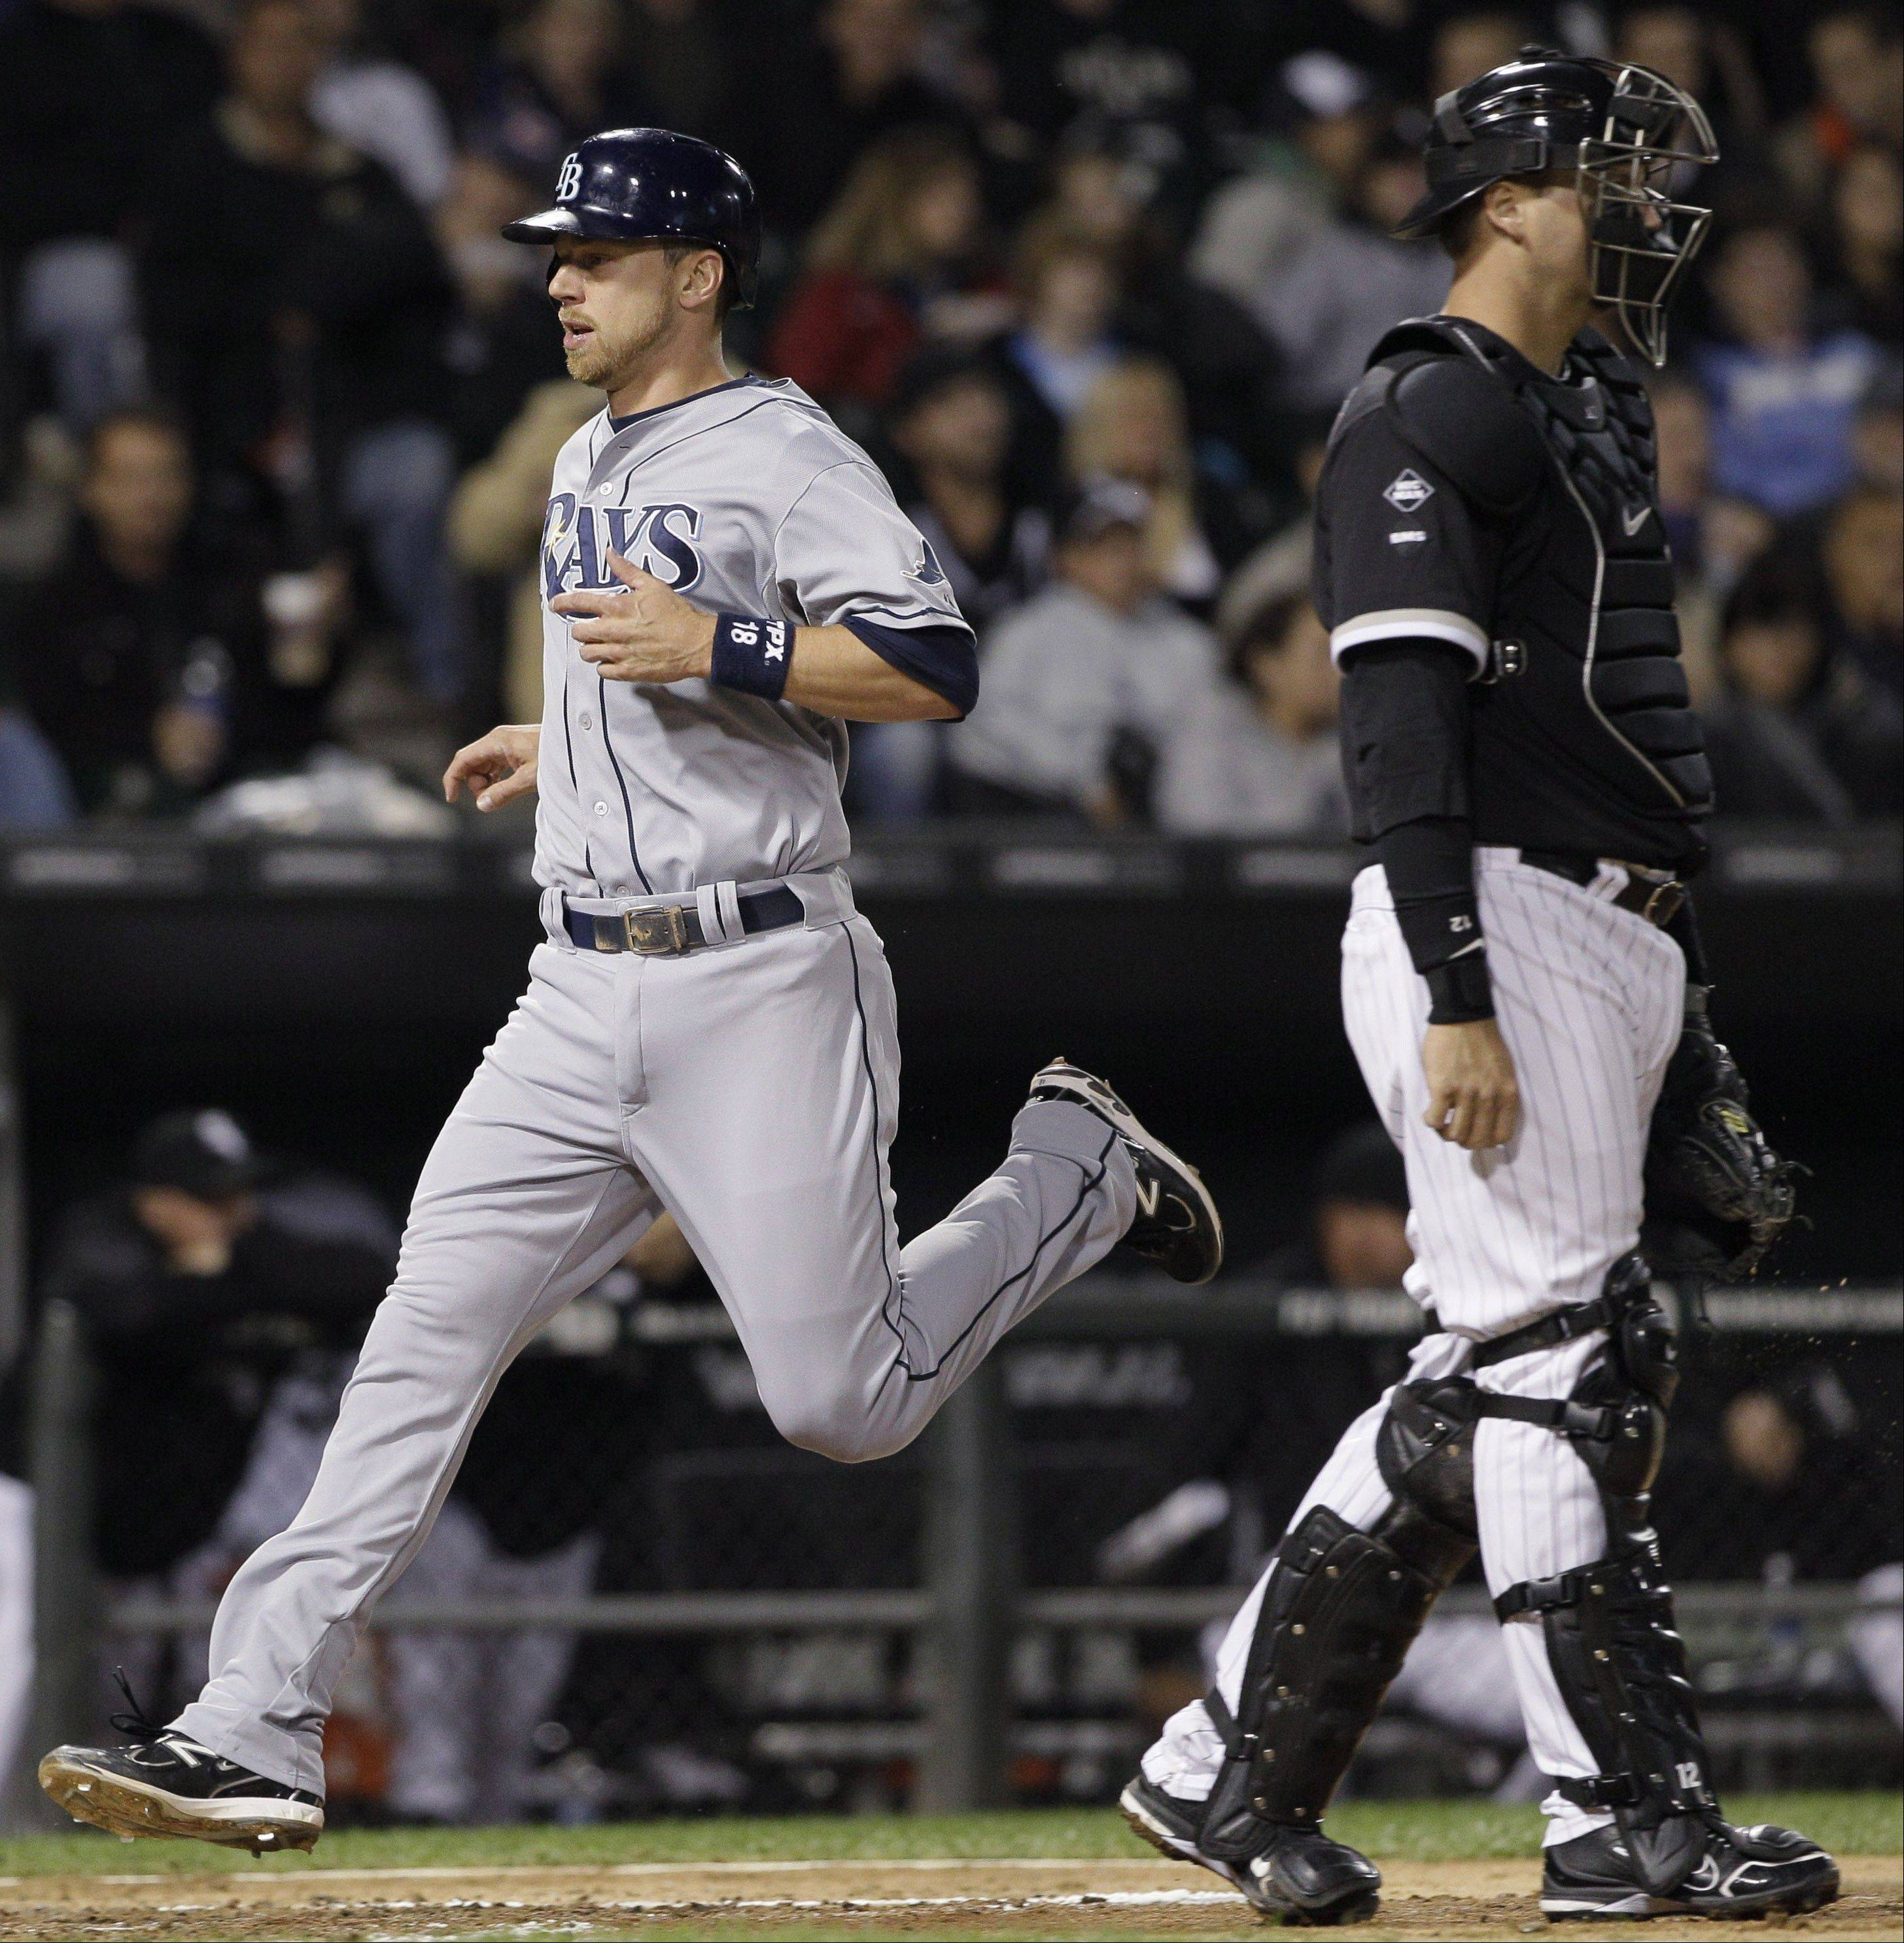 White Sox fall to Rays 3-2, now 2 behind Detroit